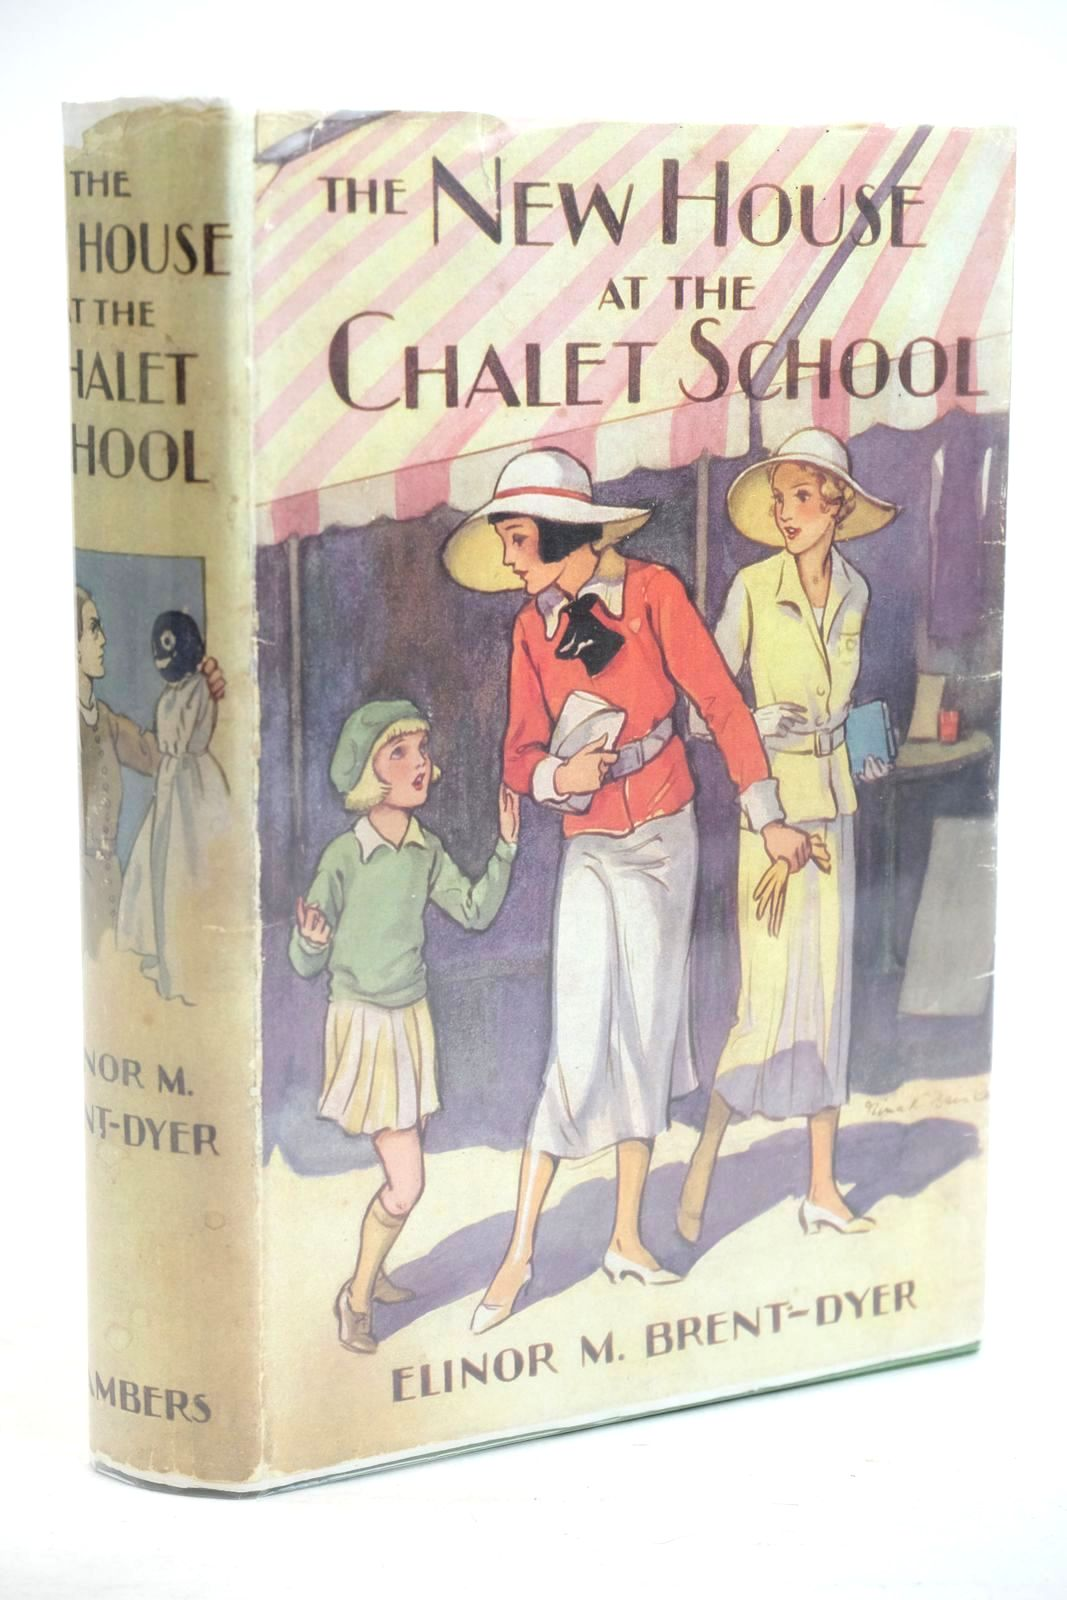 Photo of THE NEW HOUSE AT THE CHALET SCHOOL written by Brent-Dyer, Elinor M. published by W. & R. Chambers Limited (STOCK CODE: 1320042)  for sale by Stella & Rose's Books